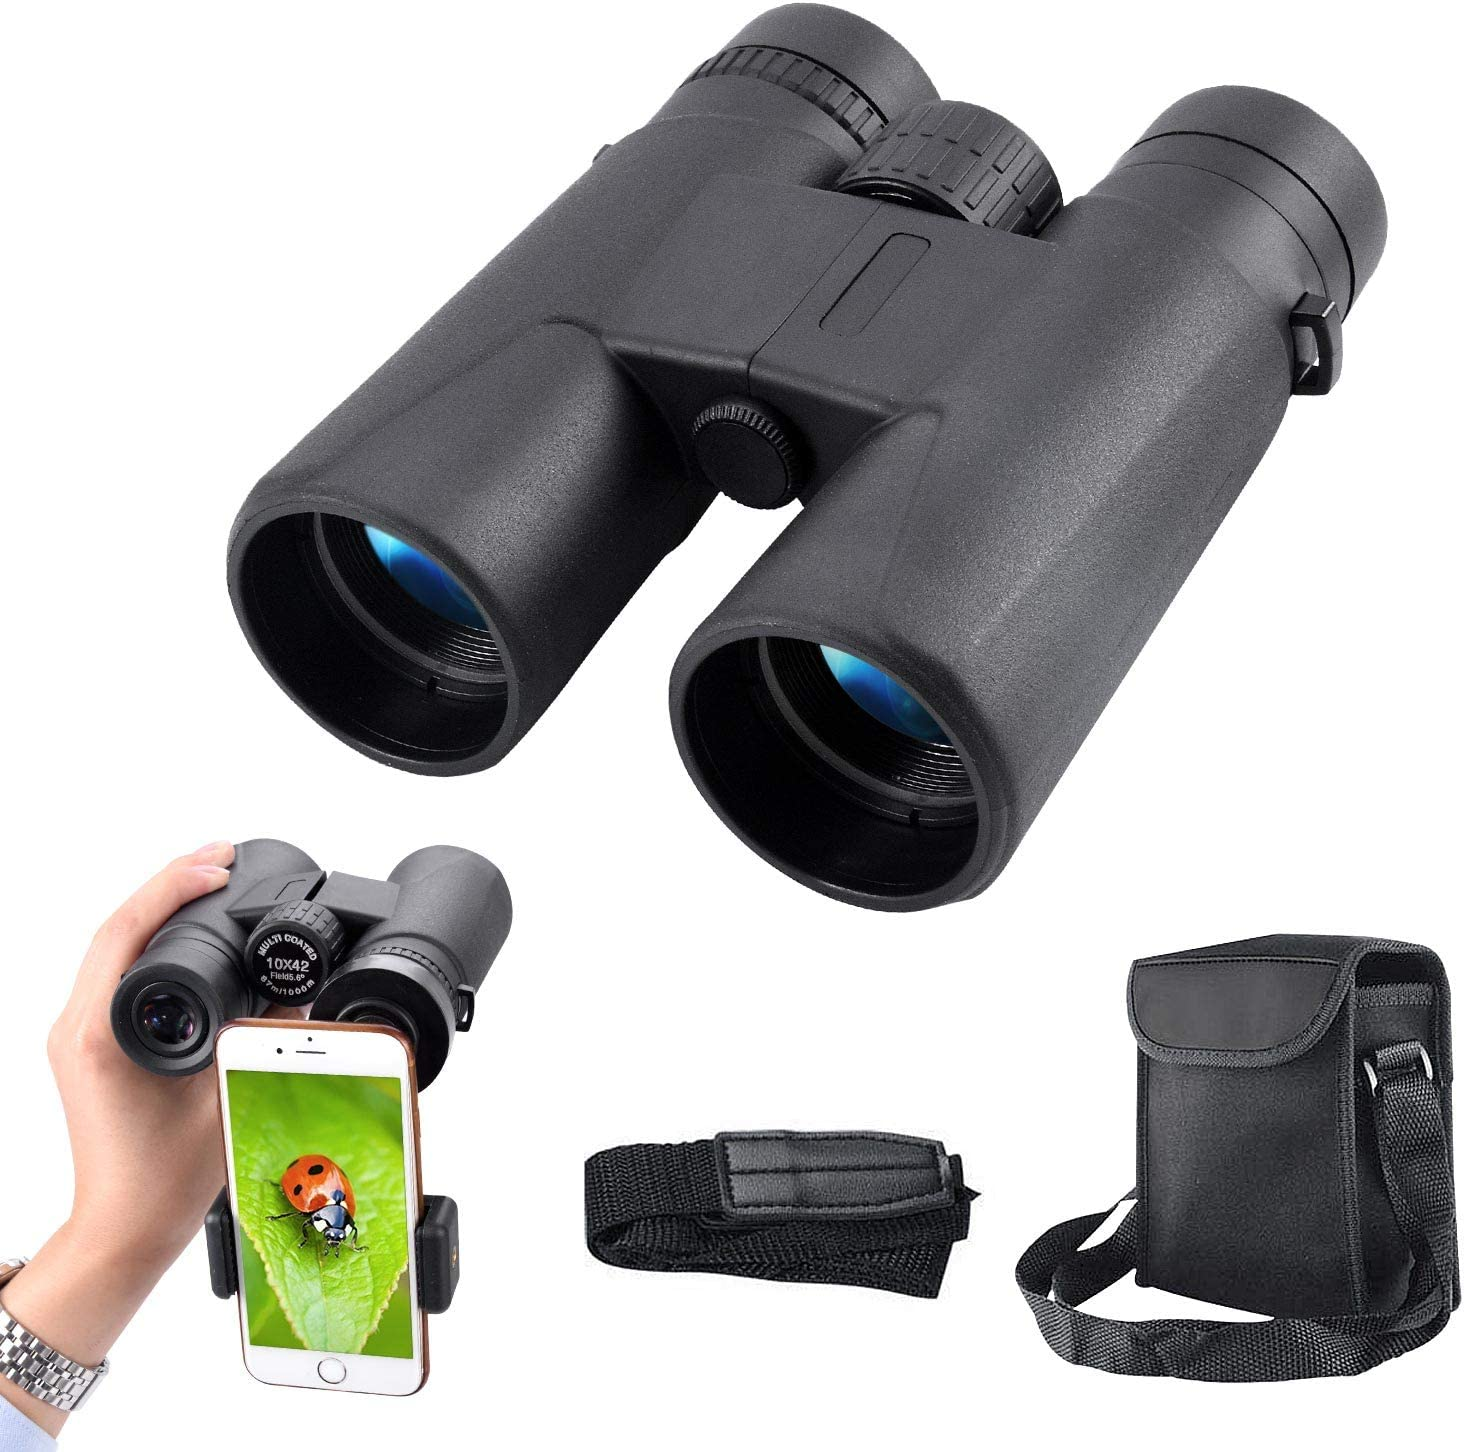 Portable Compact HD Binoculars 10×42 for Adults Waterproof Binoculars with Clear Weak Light Night Vision for Bird Watching, Travel, Stargazing, Hunting, Concerts, Sports